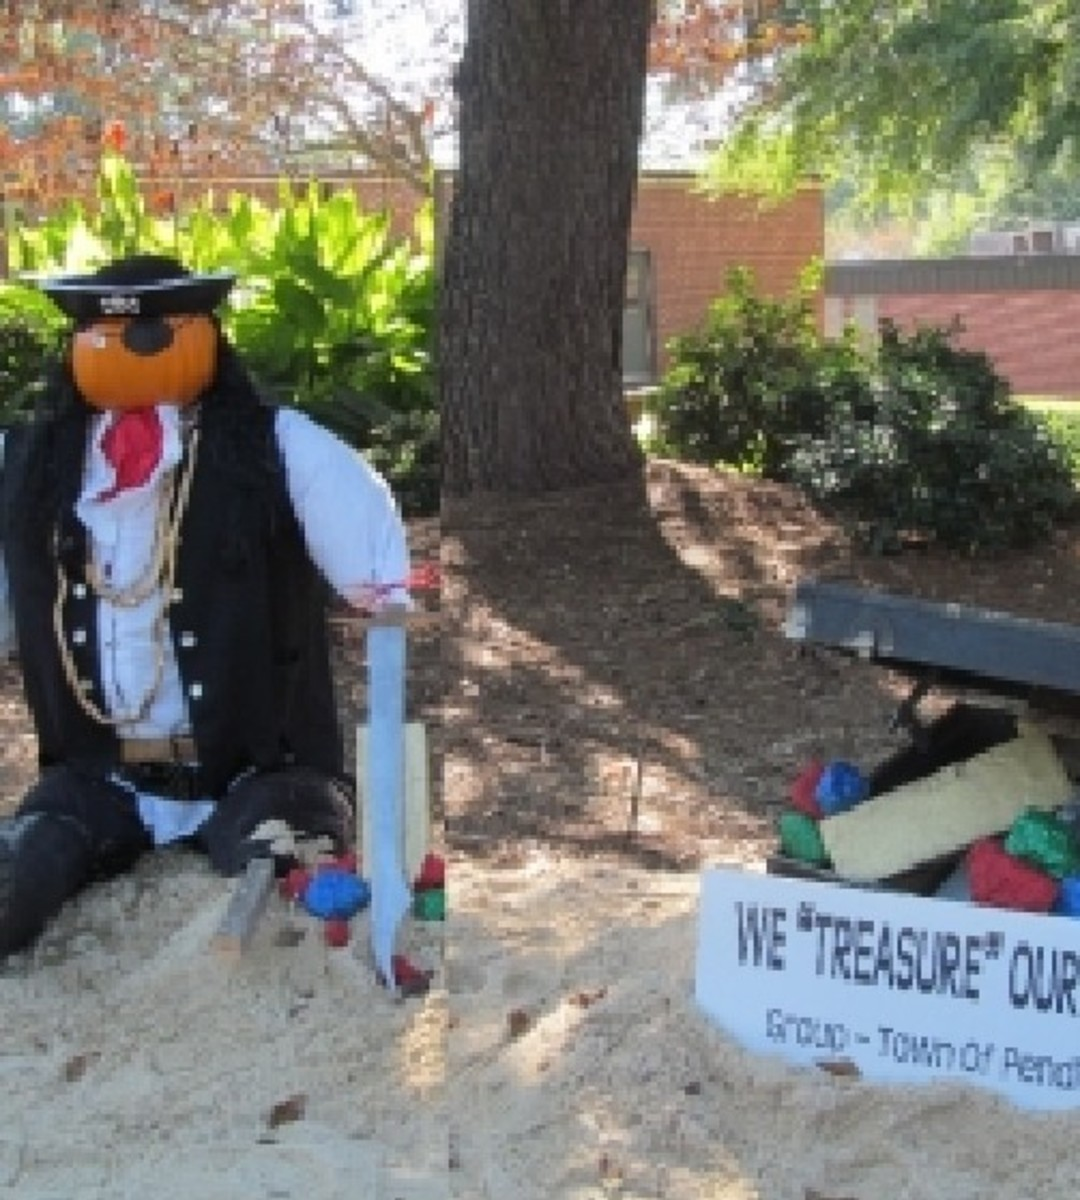 Photo Credit: Photo of Pendleton Town Hall Scarecrow display taken by OhMe